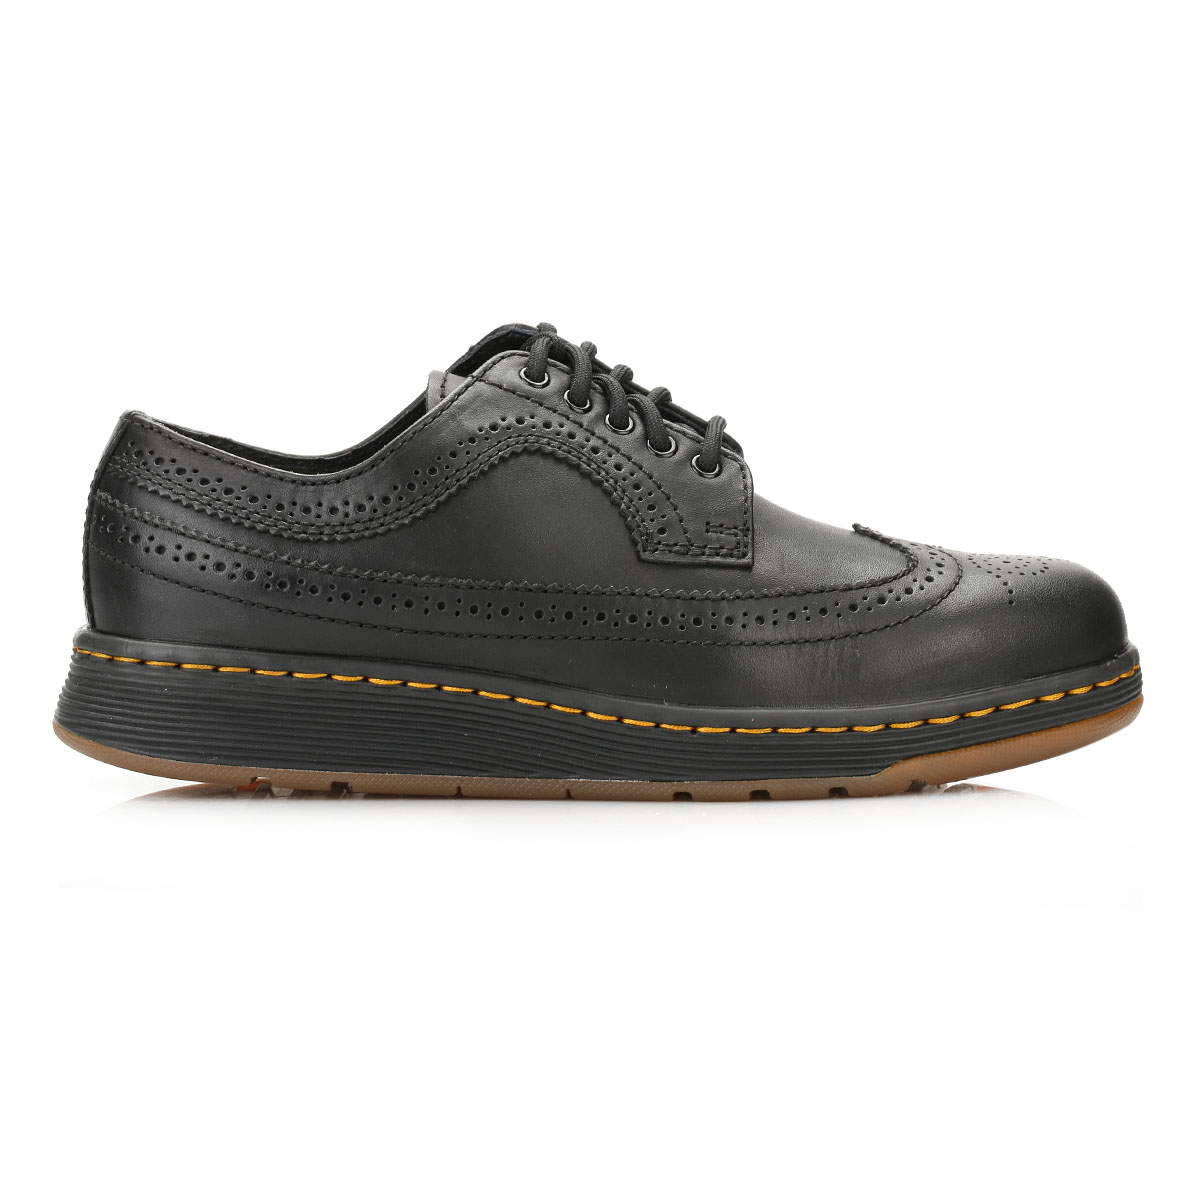 Black Leather Wingtip Shoes